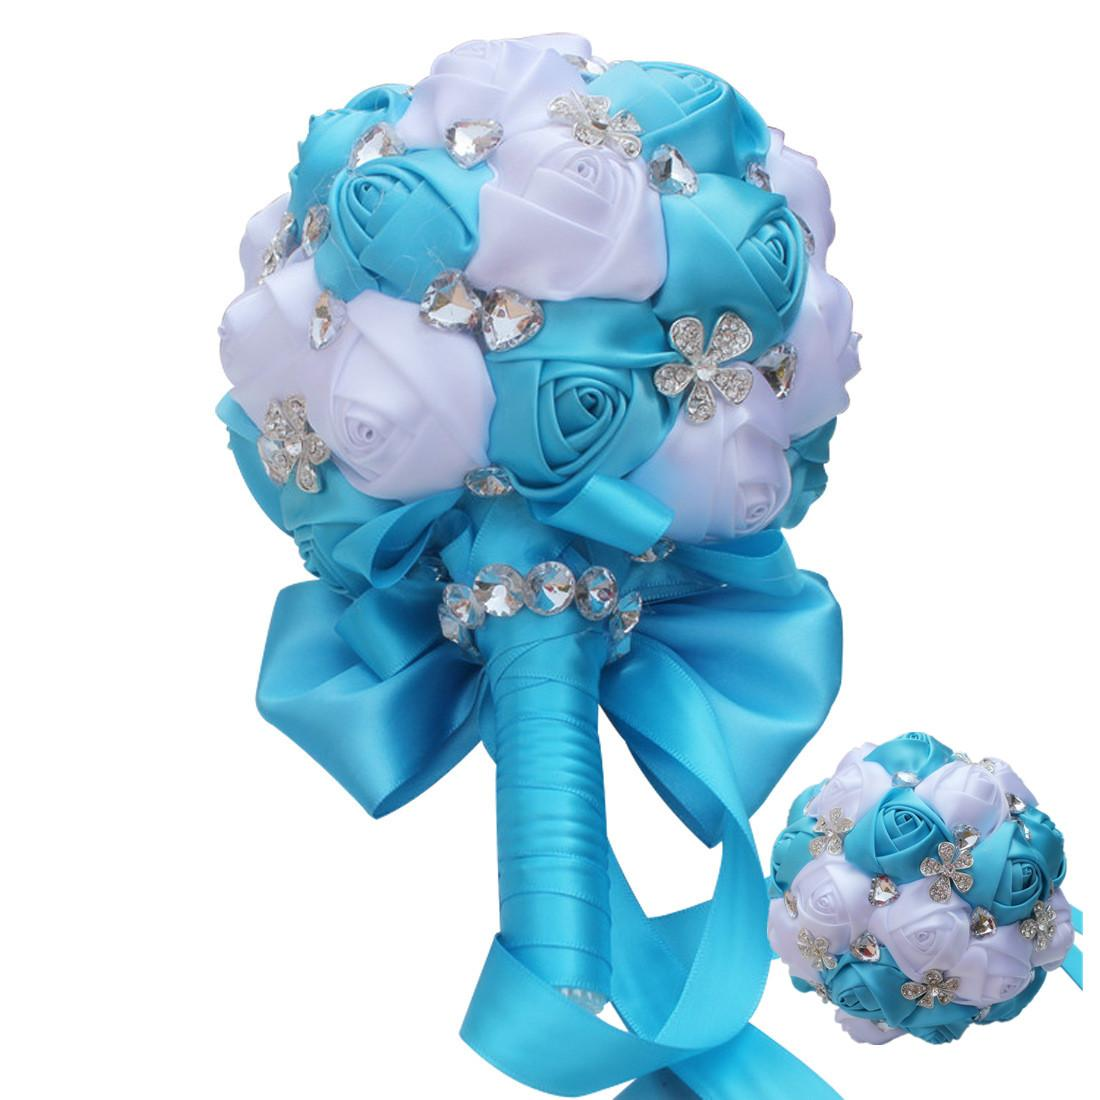 Mixed Blue White Rose Round Ball Wedding Bouquets Flower Diamond Crystal Jewelry Ornament Bridal Bridesmaid Stitch Bouquets Q245